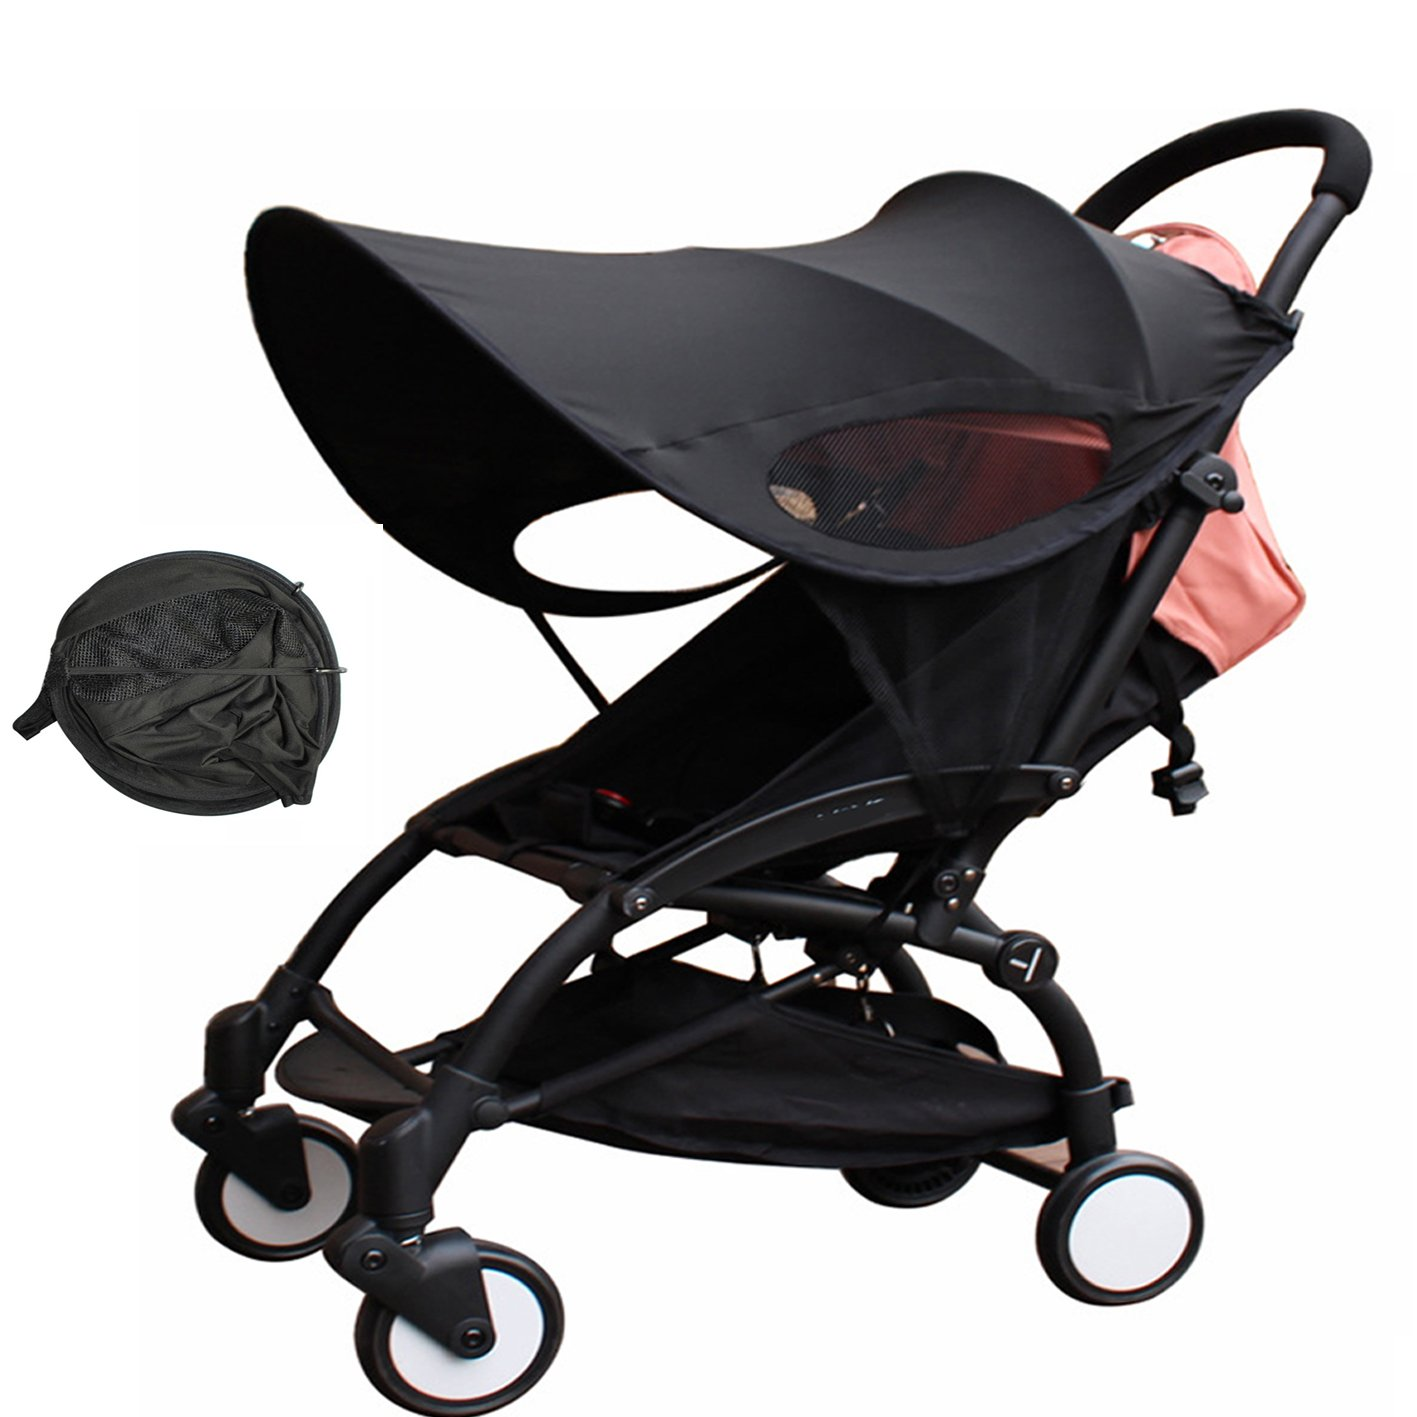 Baby Stroller Sun Ray Shade Pram UV Protection Cover, Weather Shield, Universal, Cotton LYCRAR for Infant Kids- 4 Colors,Black by YWXJY (Image #1)